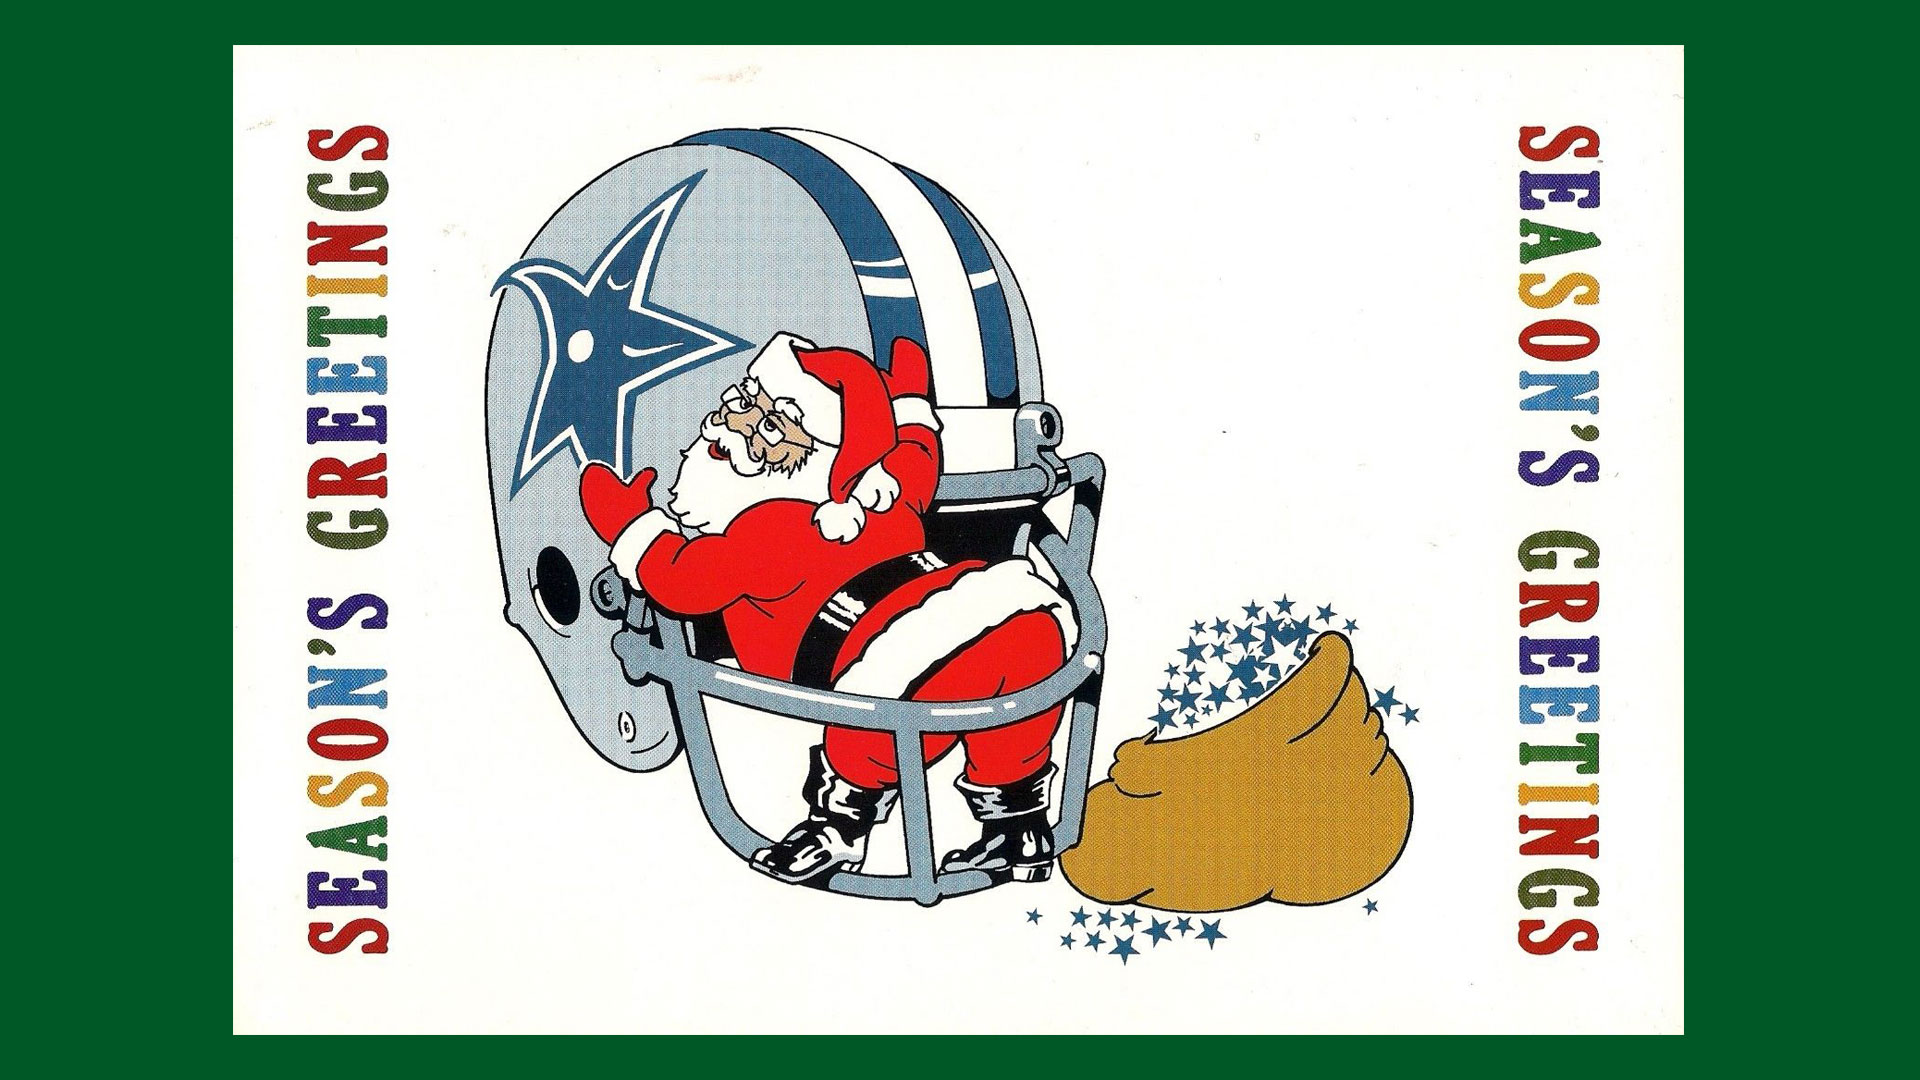 Vintage Holiday Greetings From Your Favorite Teams